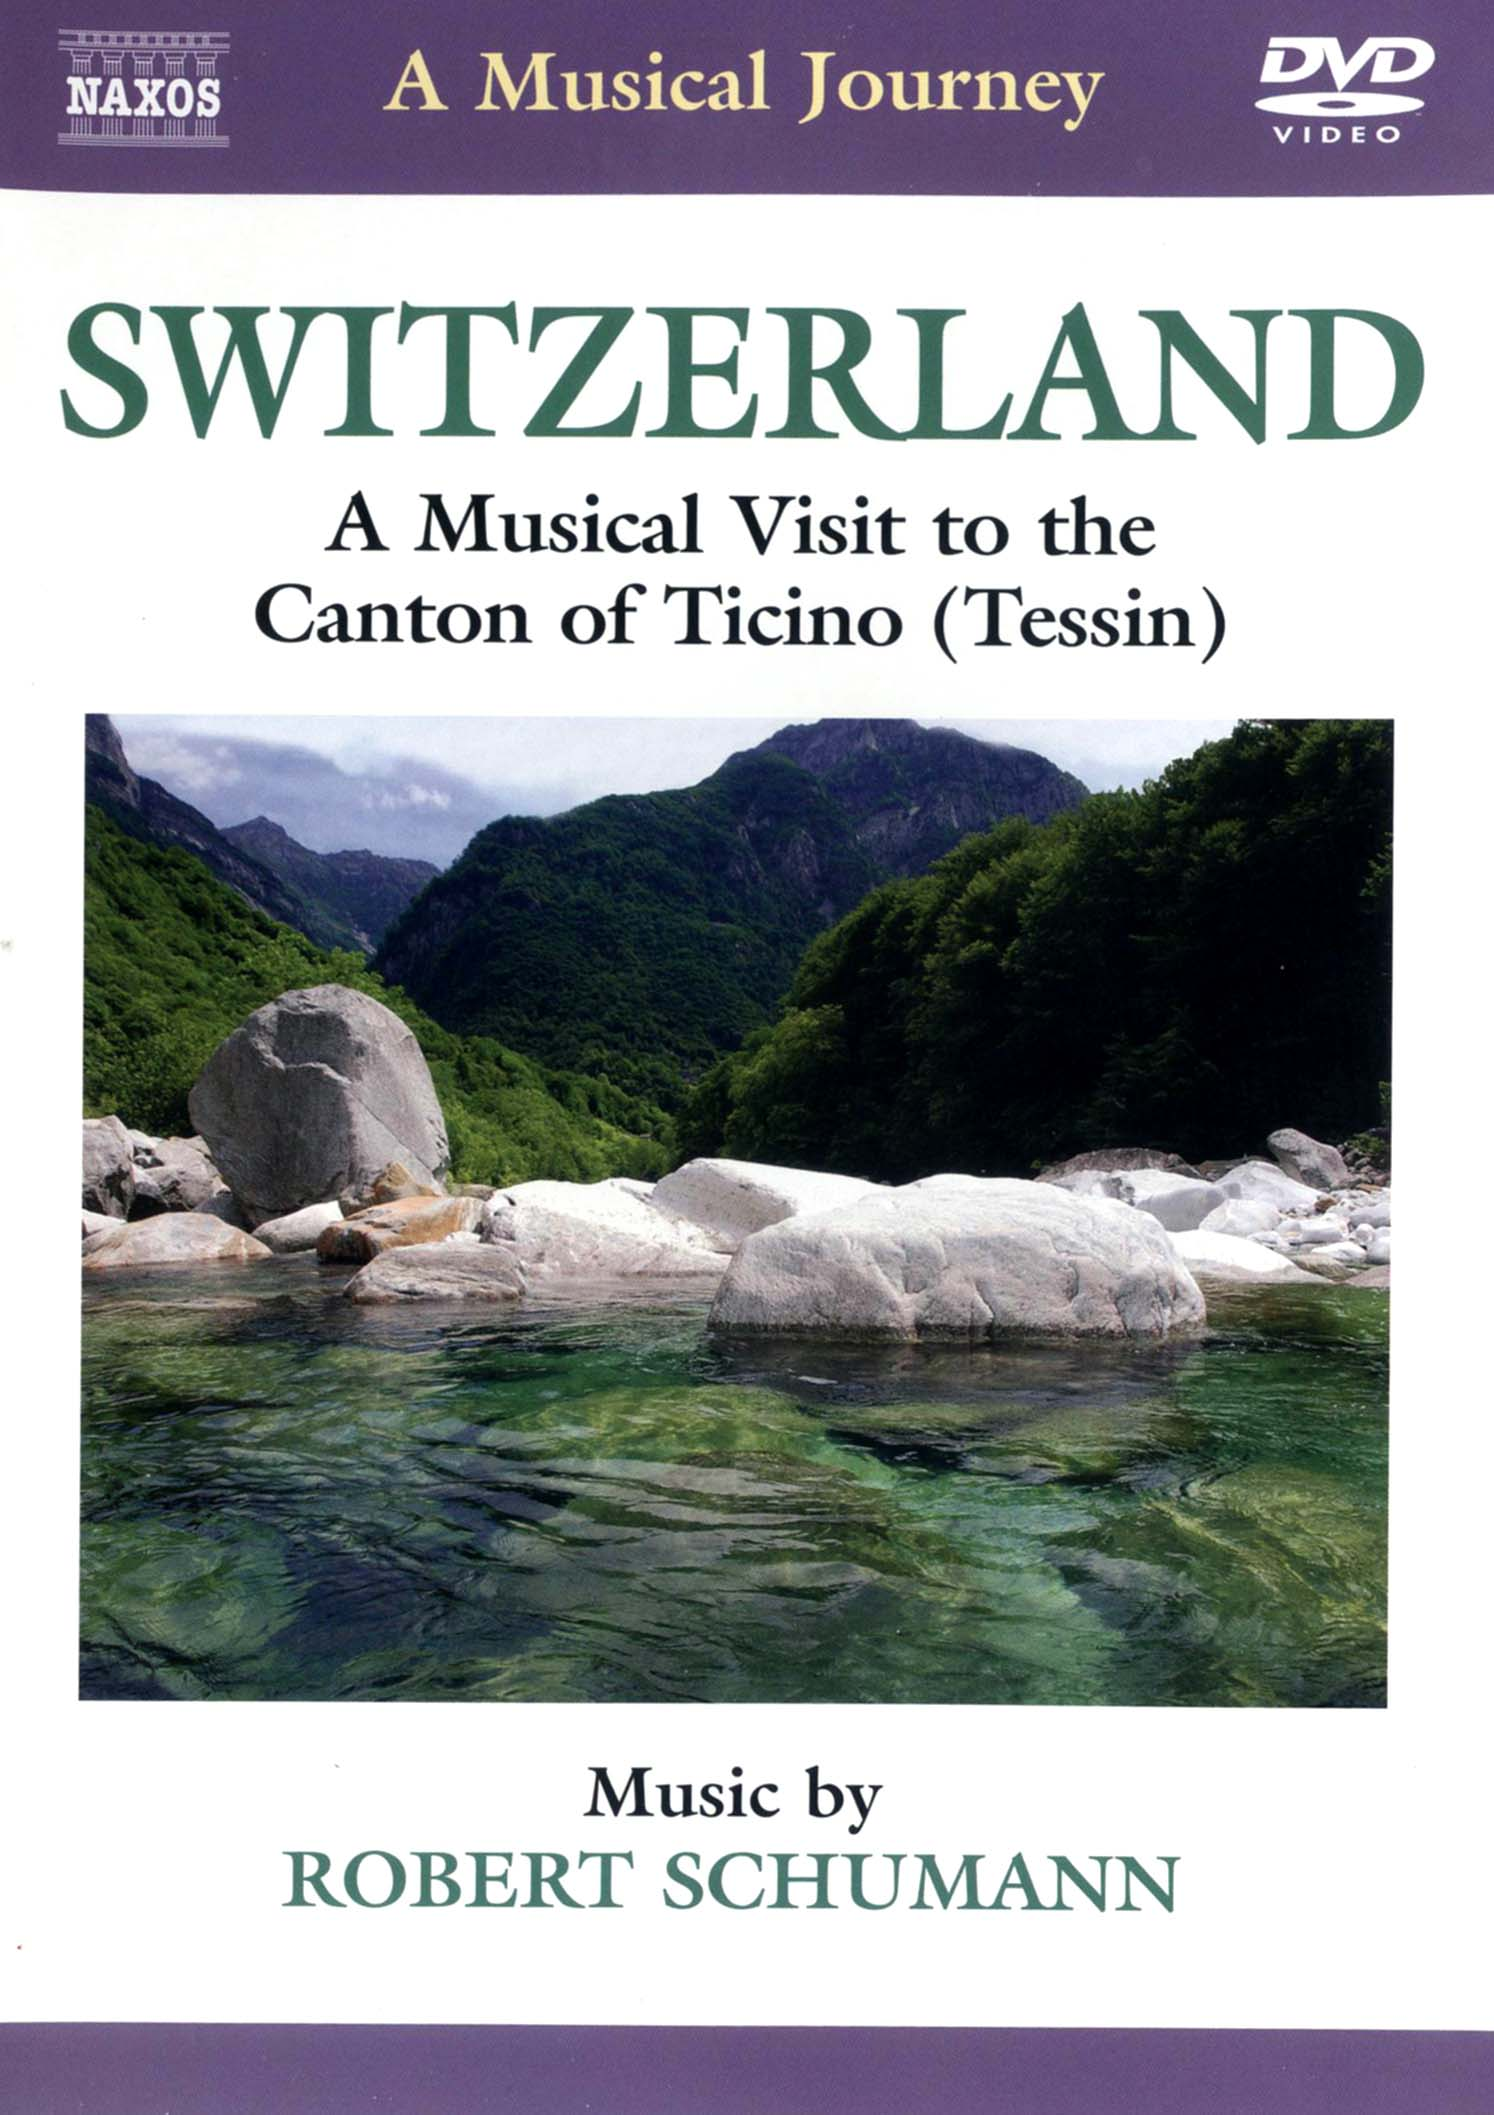 A Musical Journey: Switzerland - A Musical Visit to the Canton of Ticino (Tessin)